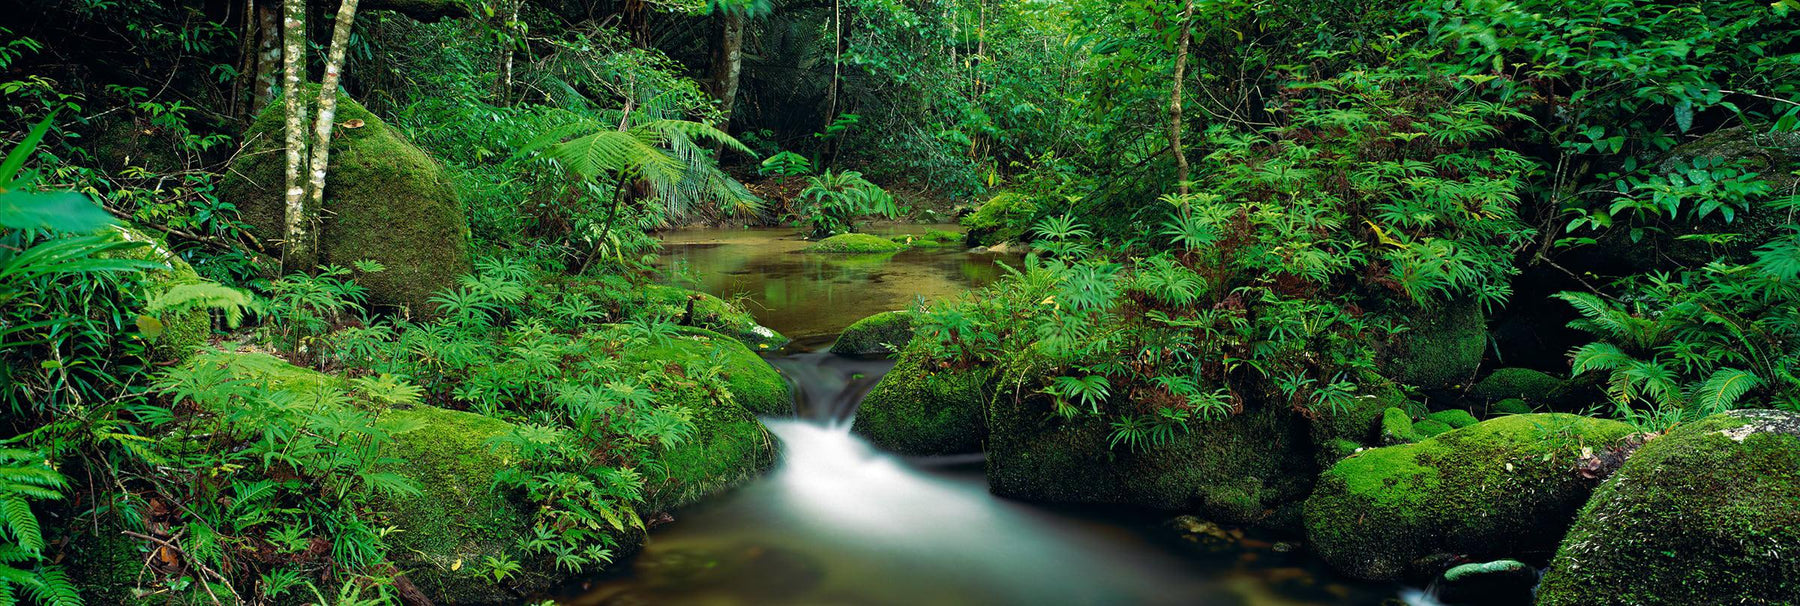 Creek with mossy boulders running through the tropical rainforest of Daintree National Park Australia